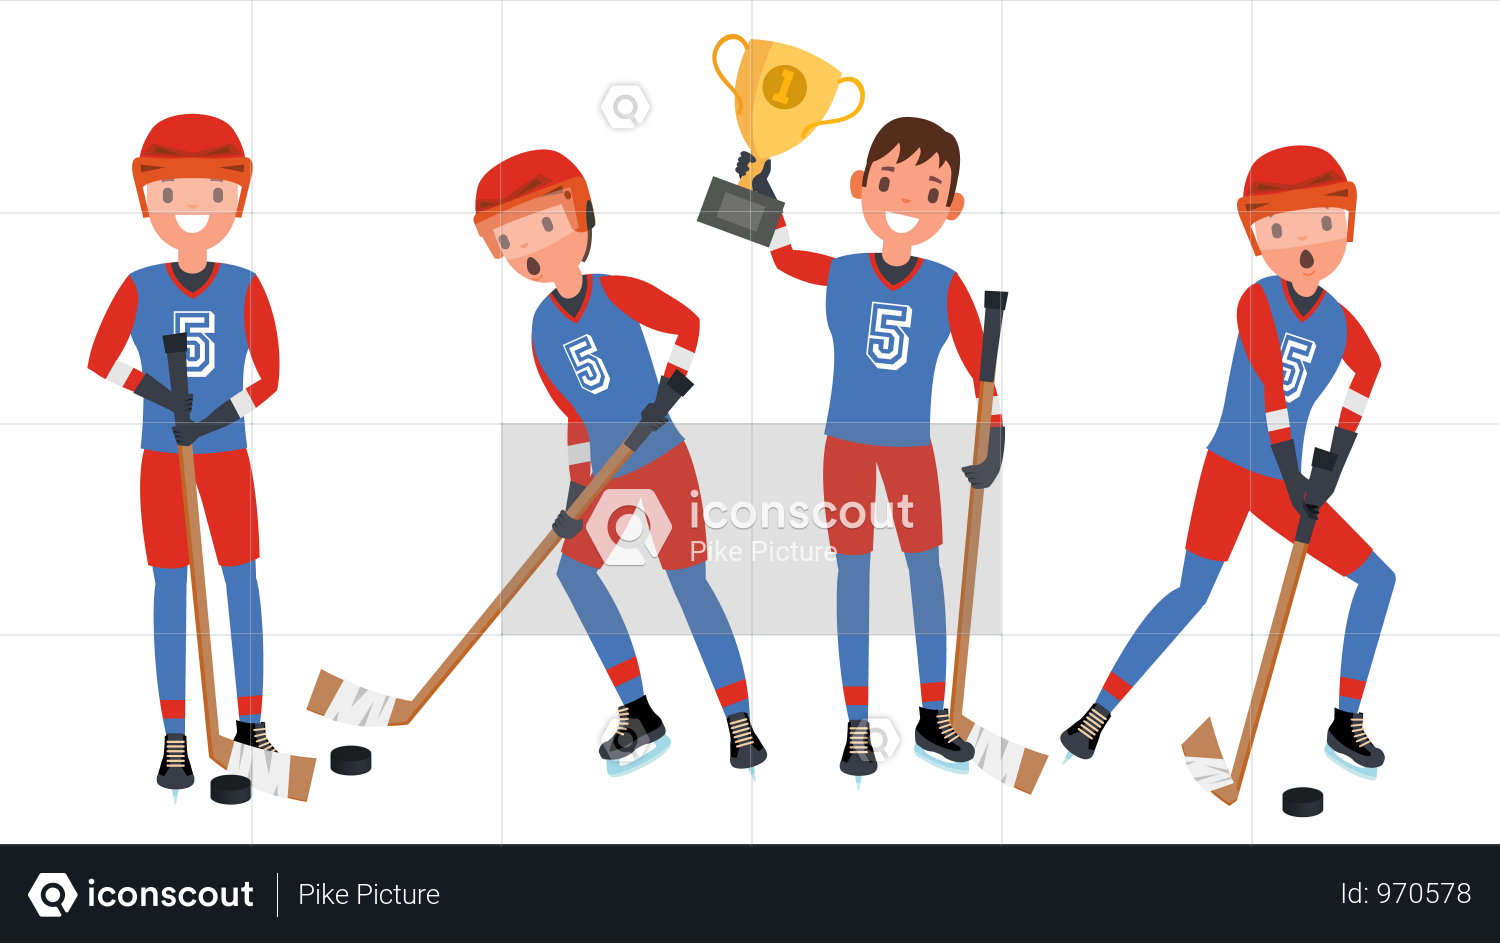 Premium Ice Hockey Man Player Vector Illustration Download In Png Vector Format Ice Hockey Ice Hockey Players Hockey Players